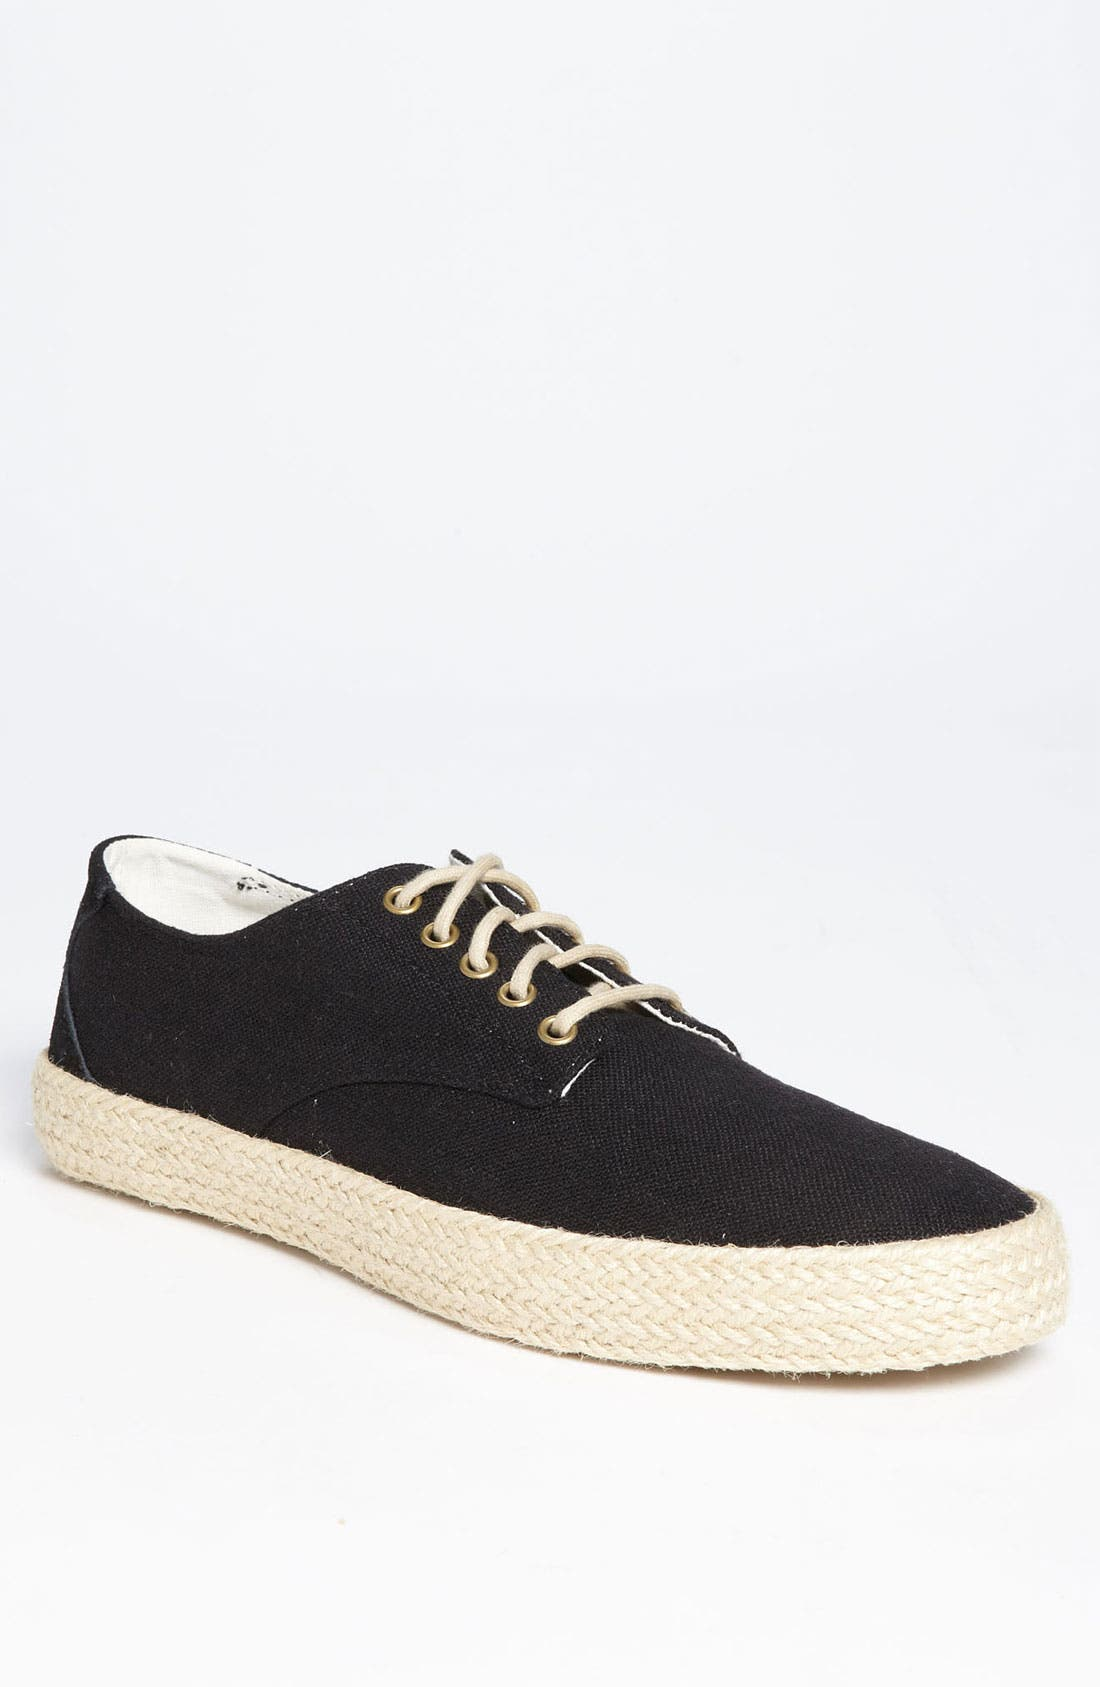 Alternate Image 1 Selected - Original Penguin 'Espy PT' Sneaker (Men)